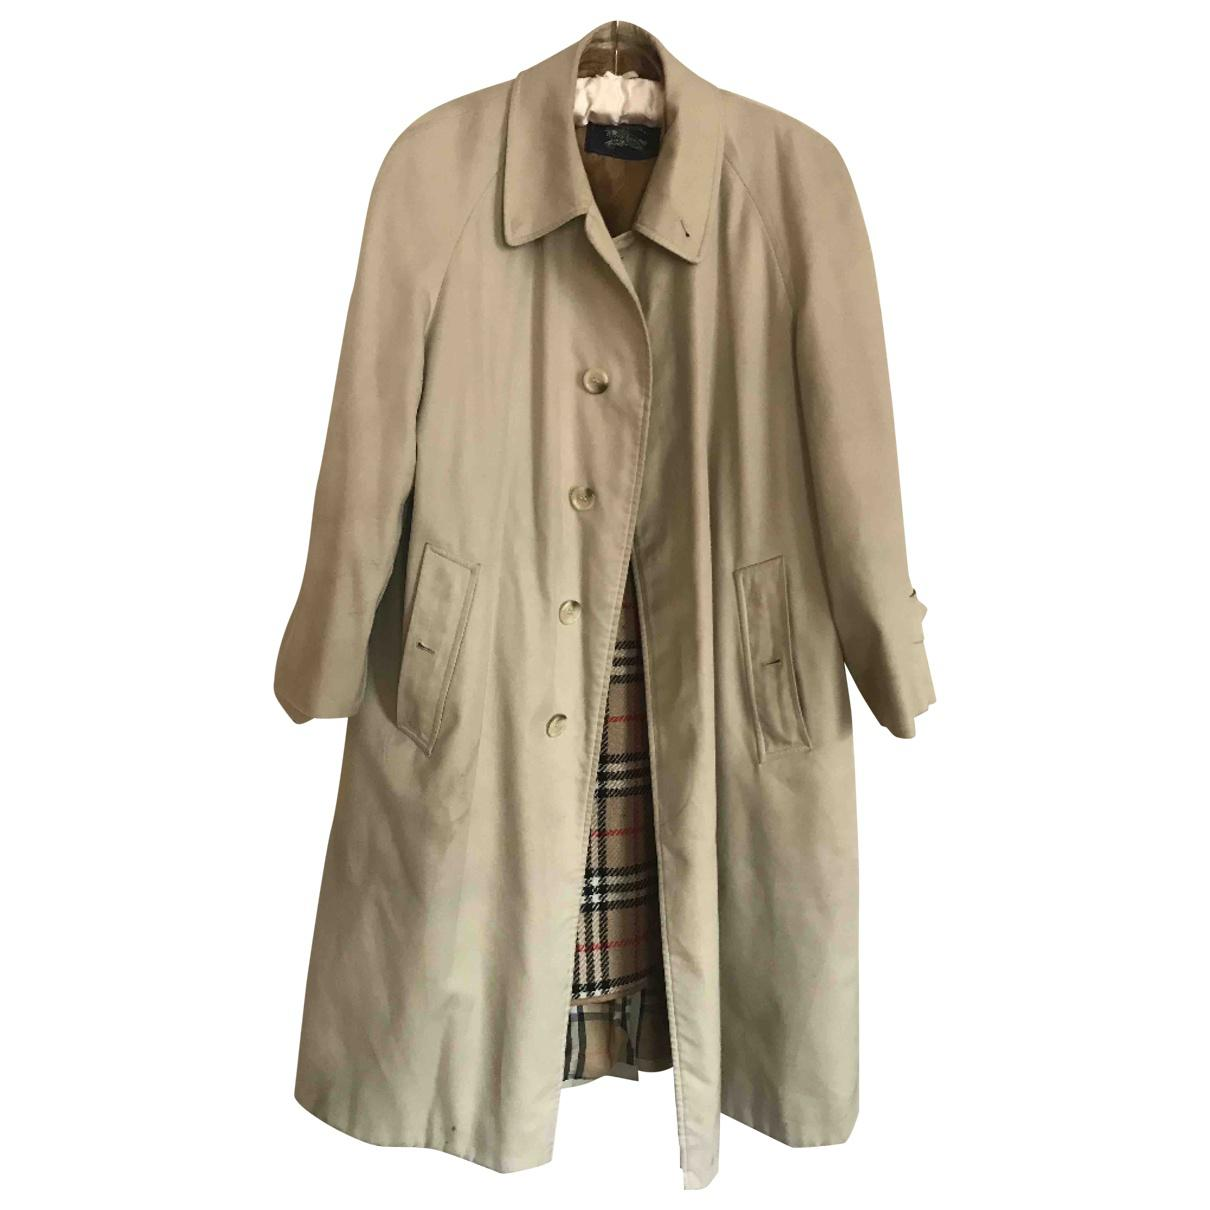 a1b01baaa0a4 Lyst - Burberry Pre-owned Vintage Beige Cotton Trench Coat in Natural